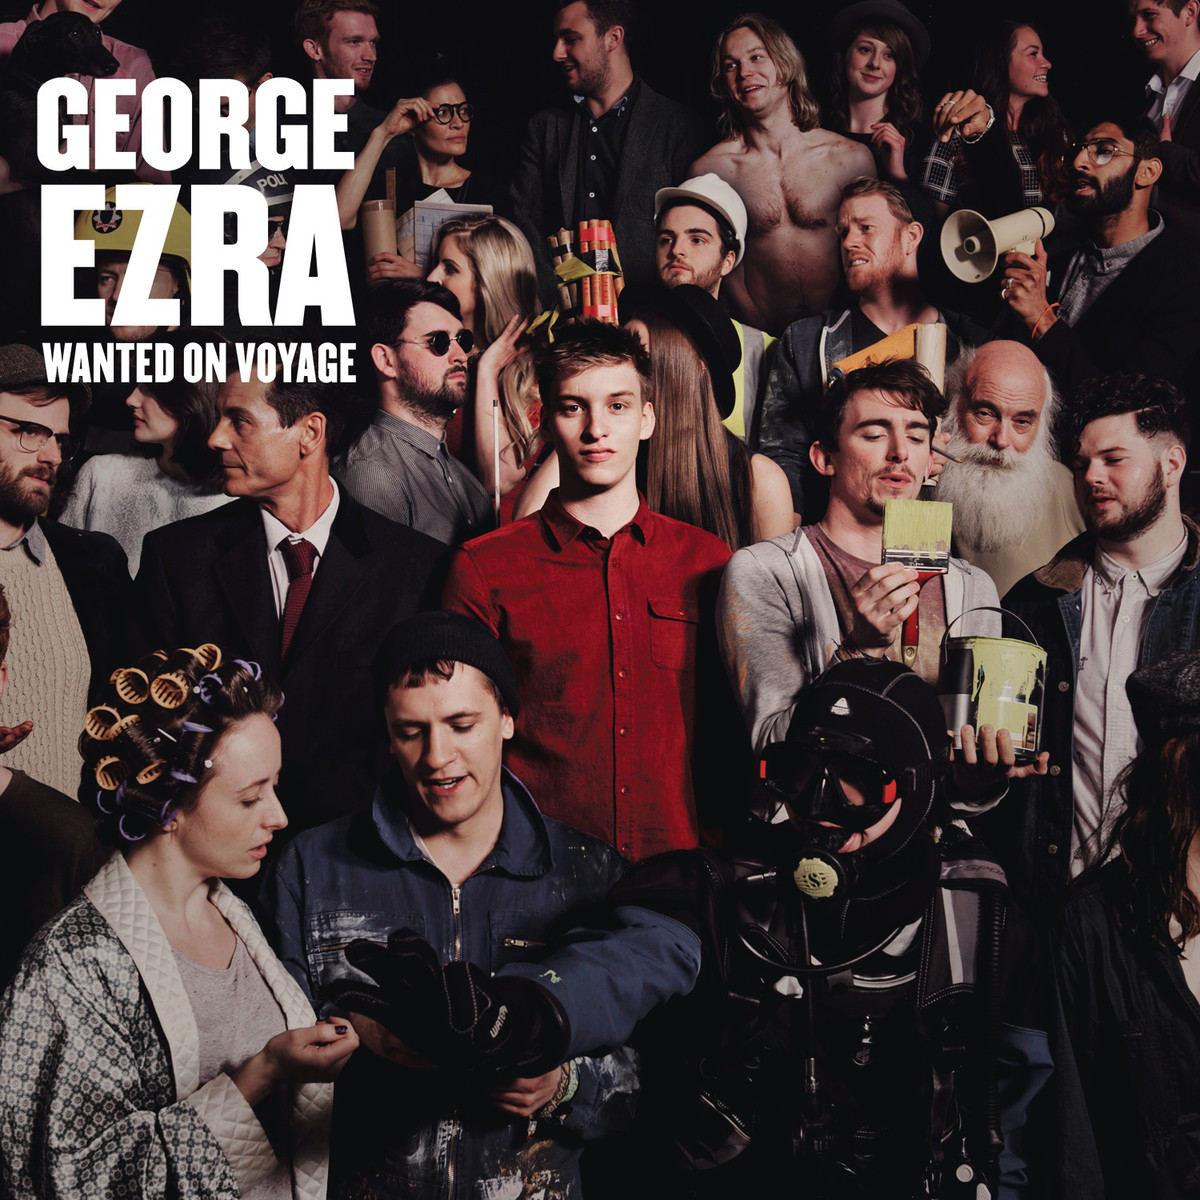 George-Ezra-Wanted-On-Voyage-Deluxe-Edition-2014-1200x1200